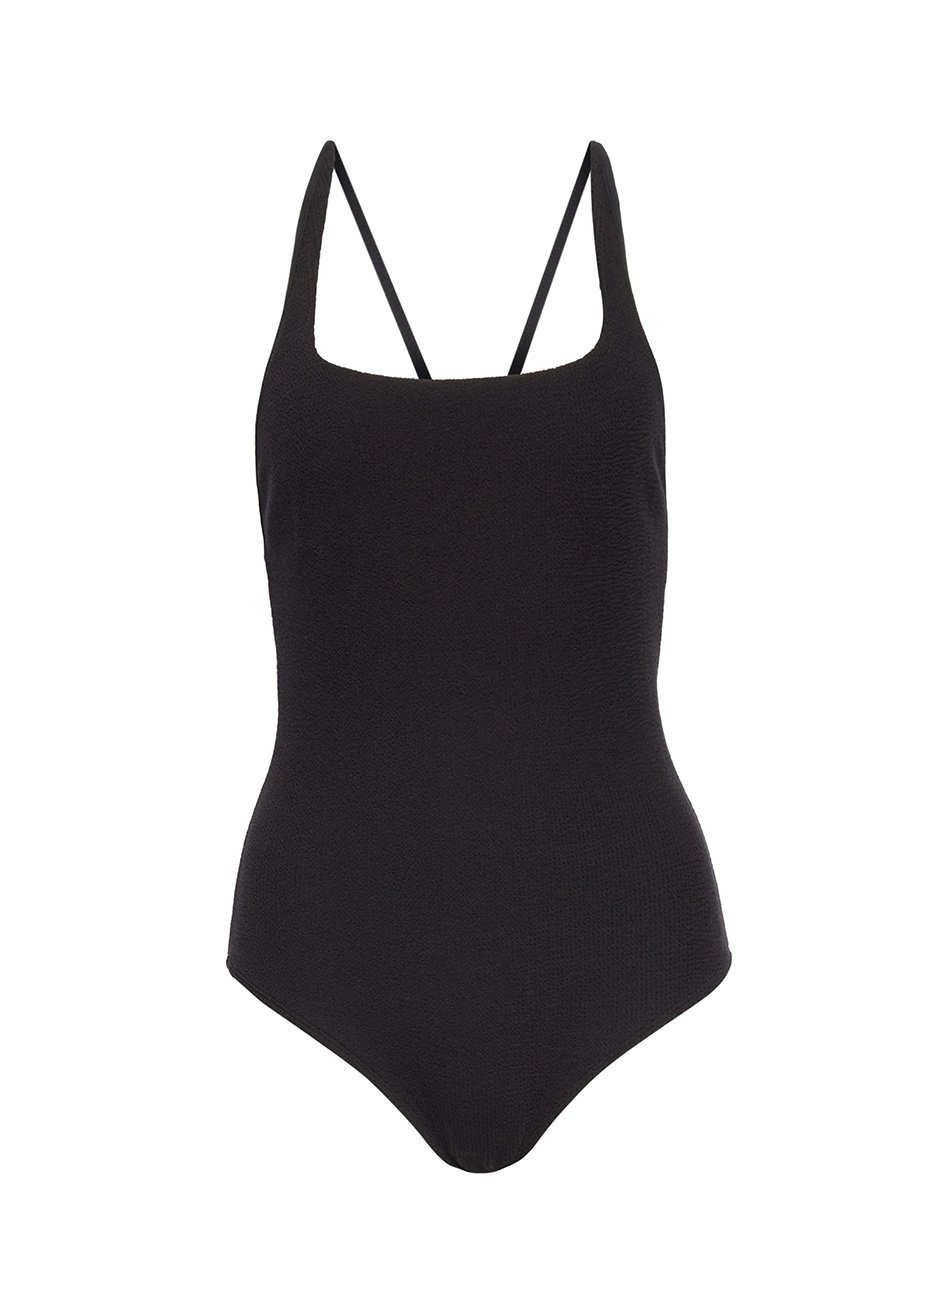 Ganni Crossed Back Textured One Piece Swimsuit in Black